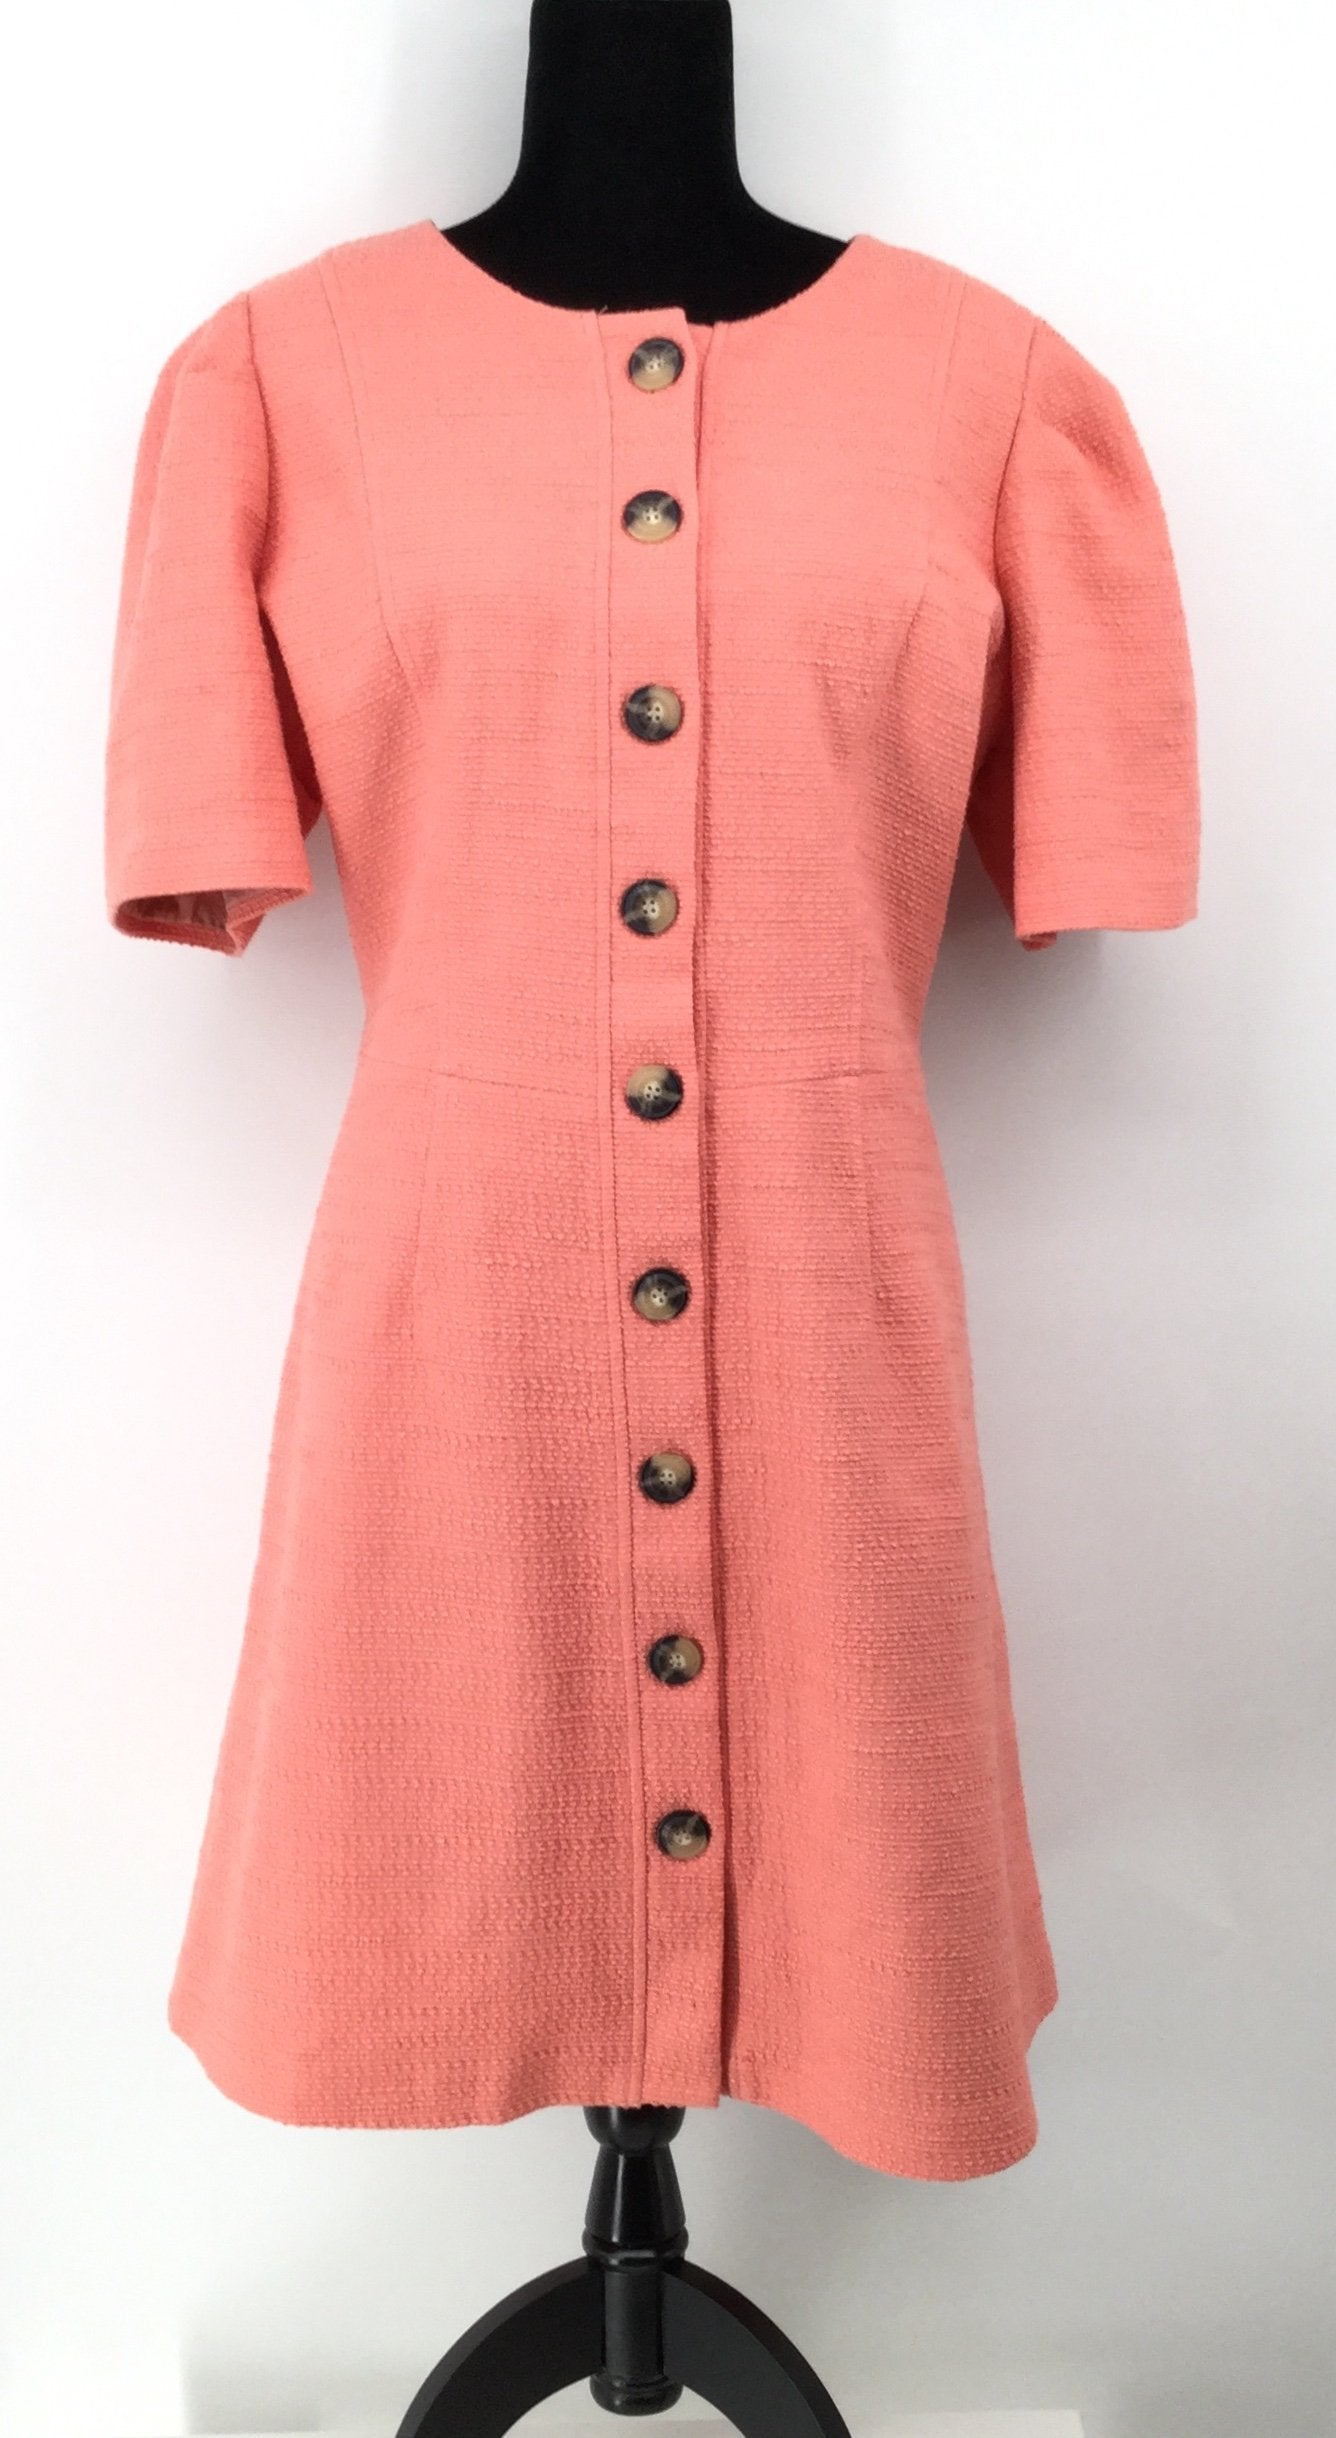 Gal Meets Glam Salmon Dress Size:18 - <P>GAL MEETS GLAM TEXTURED SALMON COLORED DRESS WITH BROWN BUTTONS GOING DOWN THE DRESS. STRUCTURED SLEEVES AND ALSO HAS POCKETS. SIZE 18.</P>